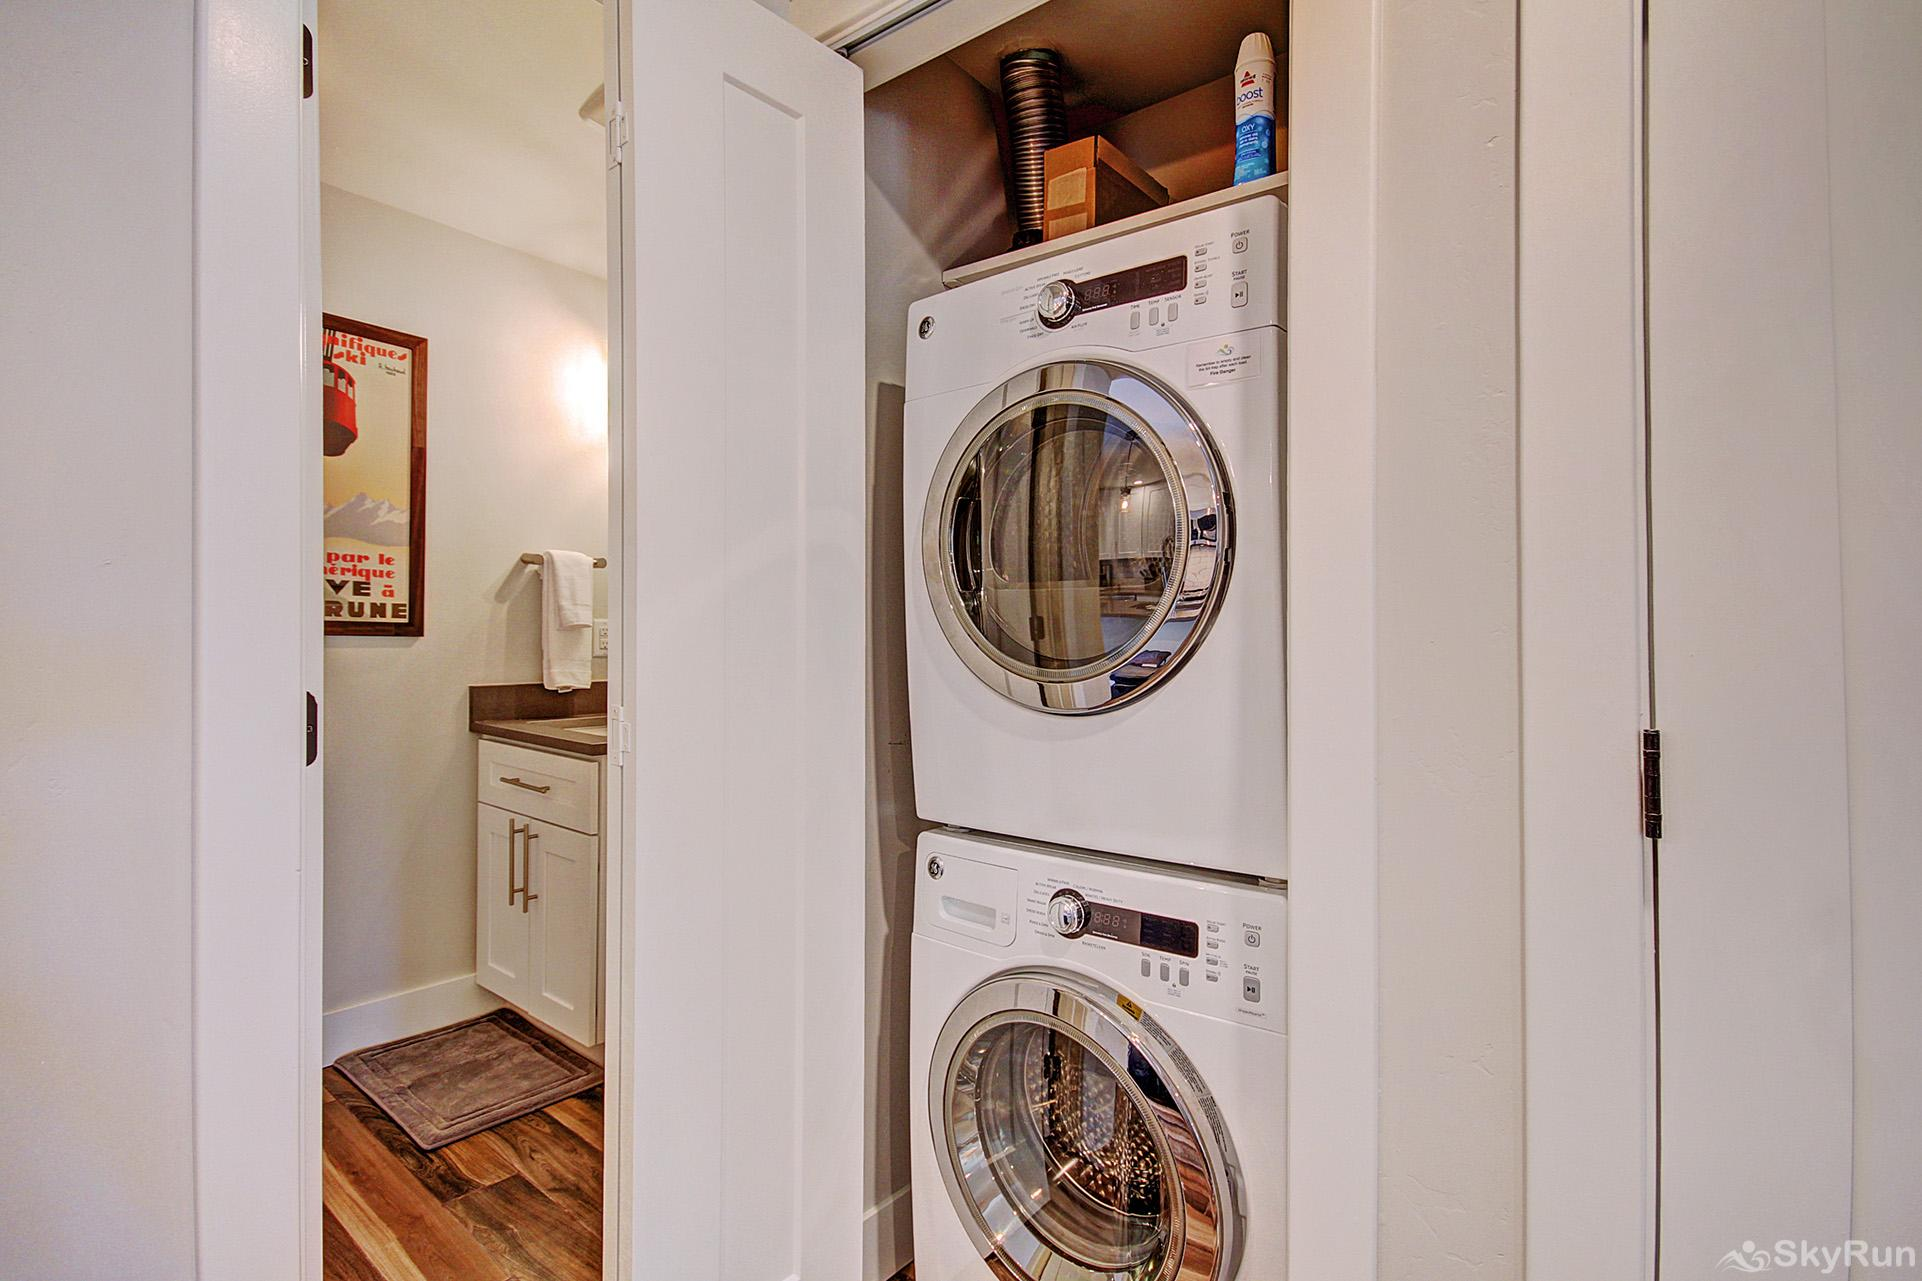 First Last Chance Convenient in-home washer and dryer